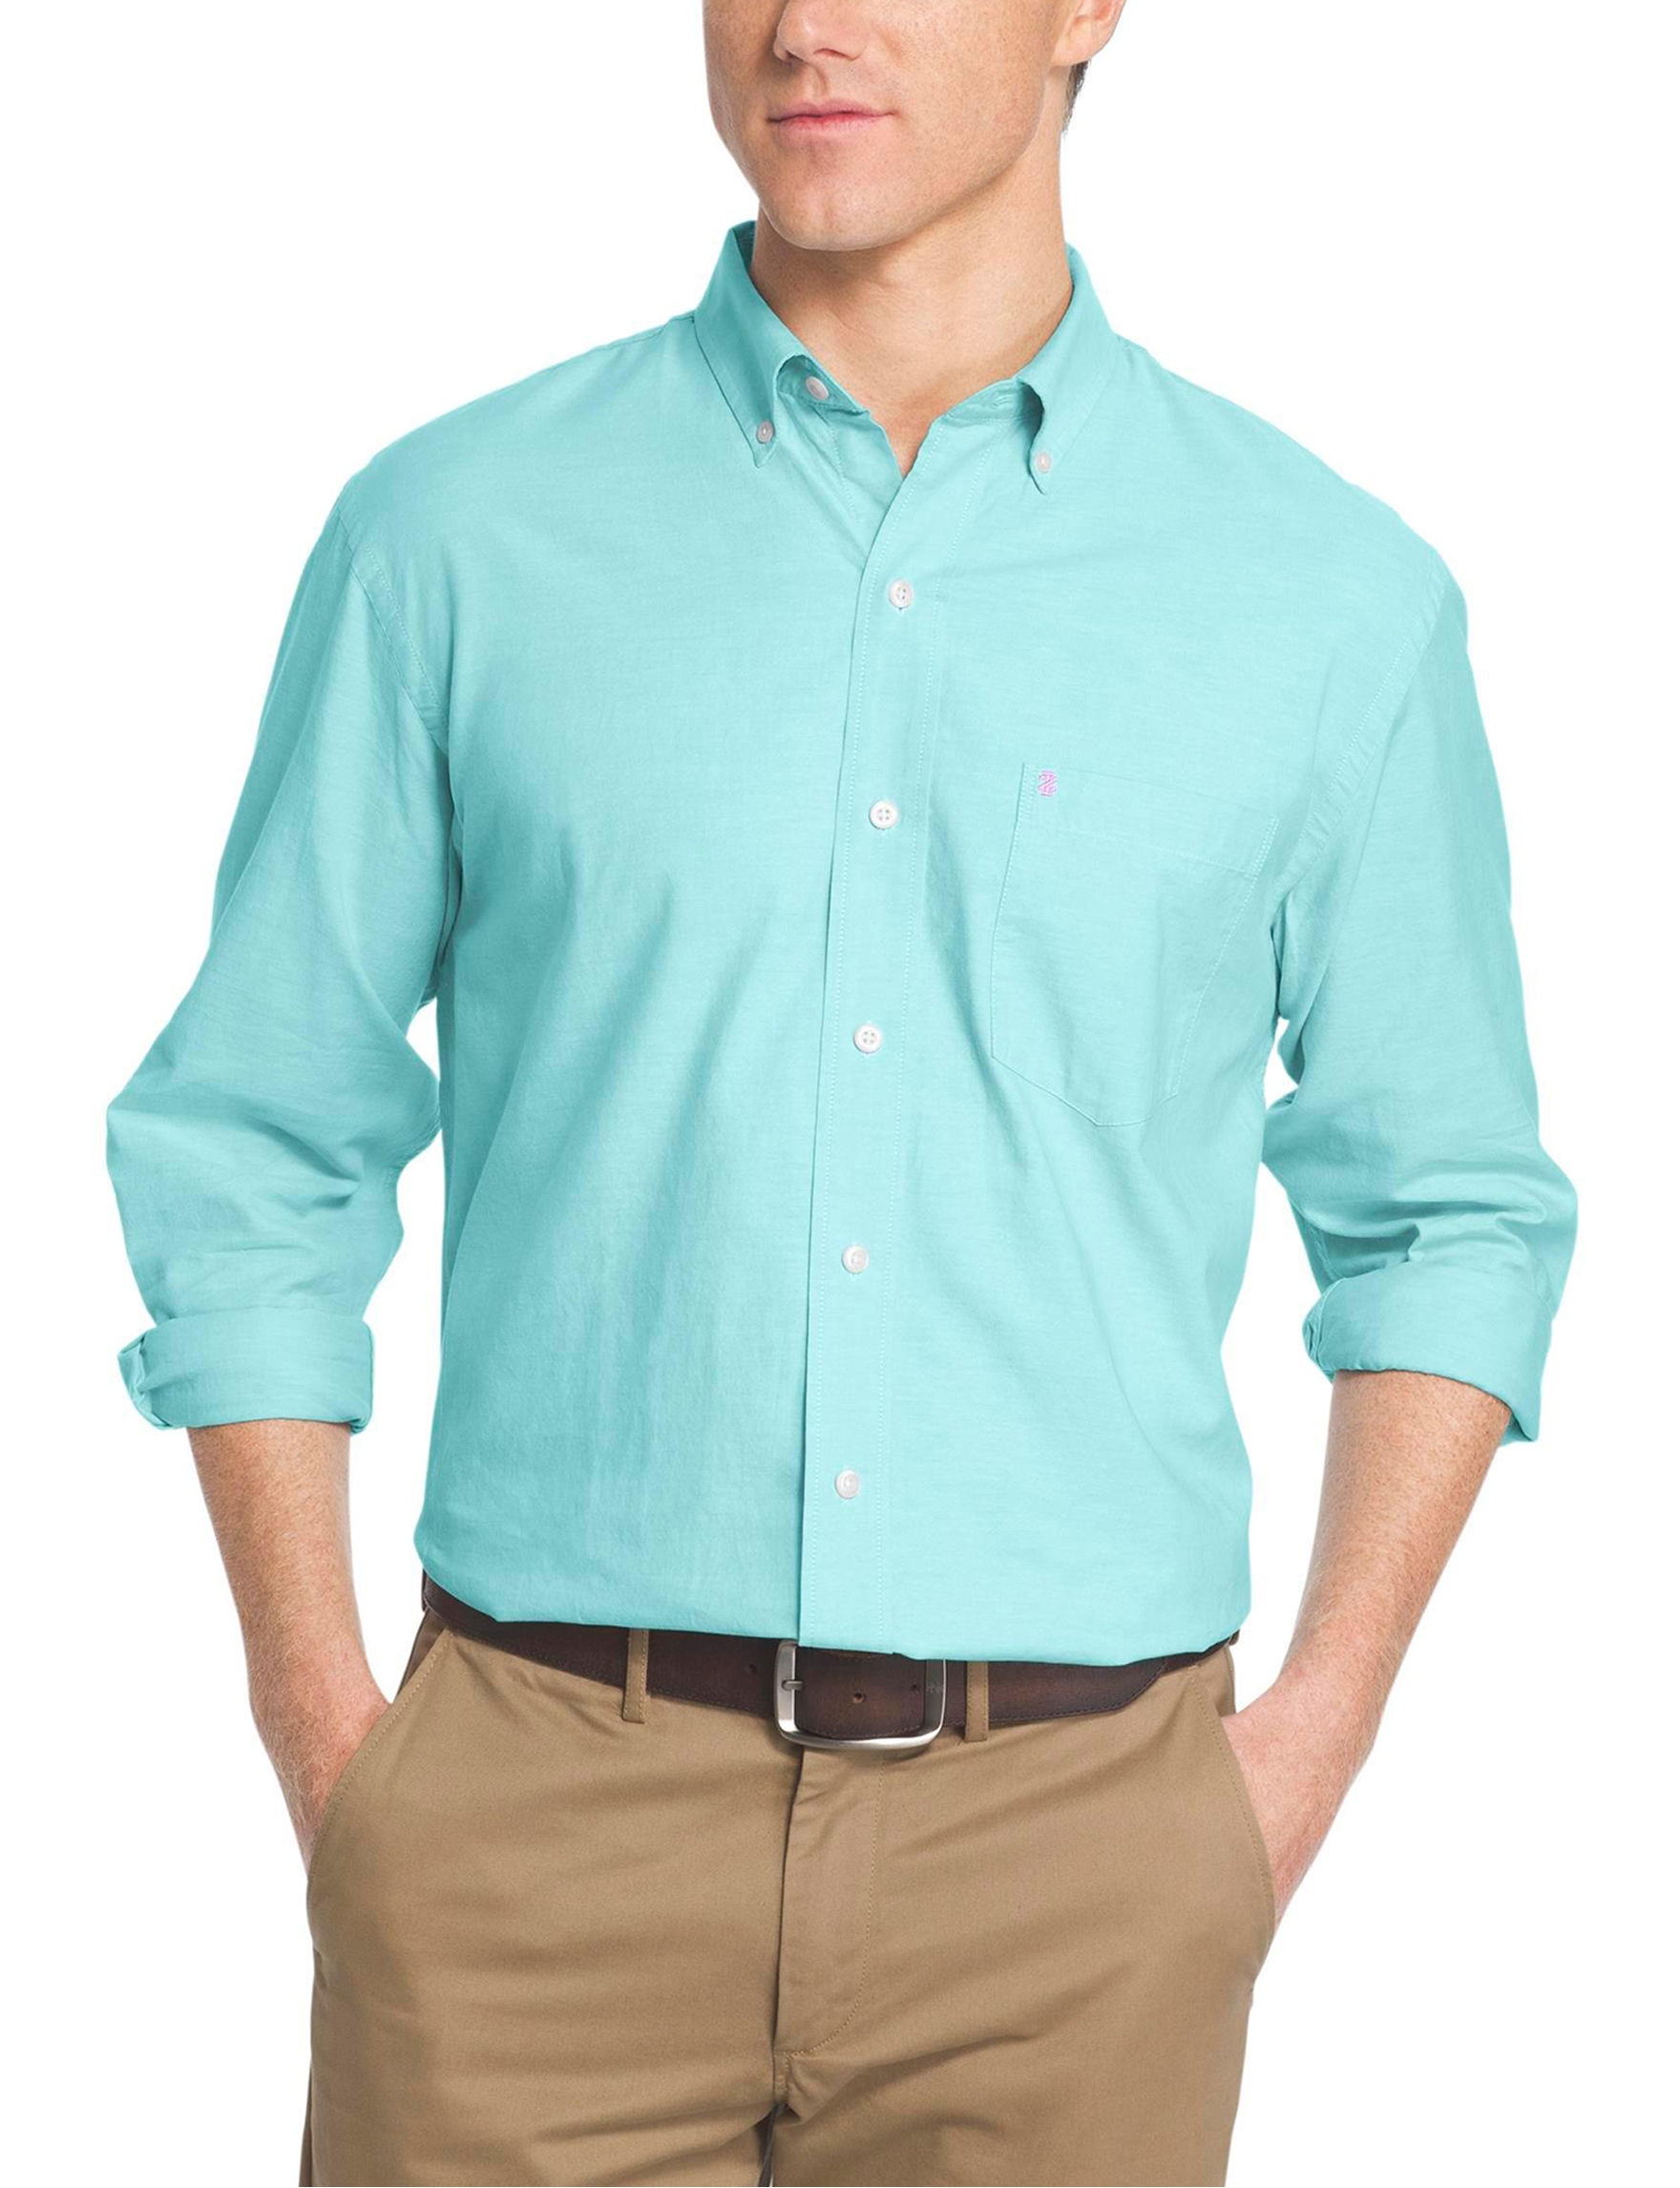 Izod oxford button down shirt stage stores for Izod button down shirts